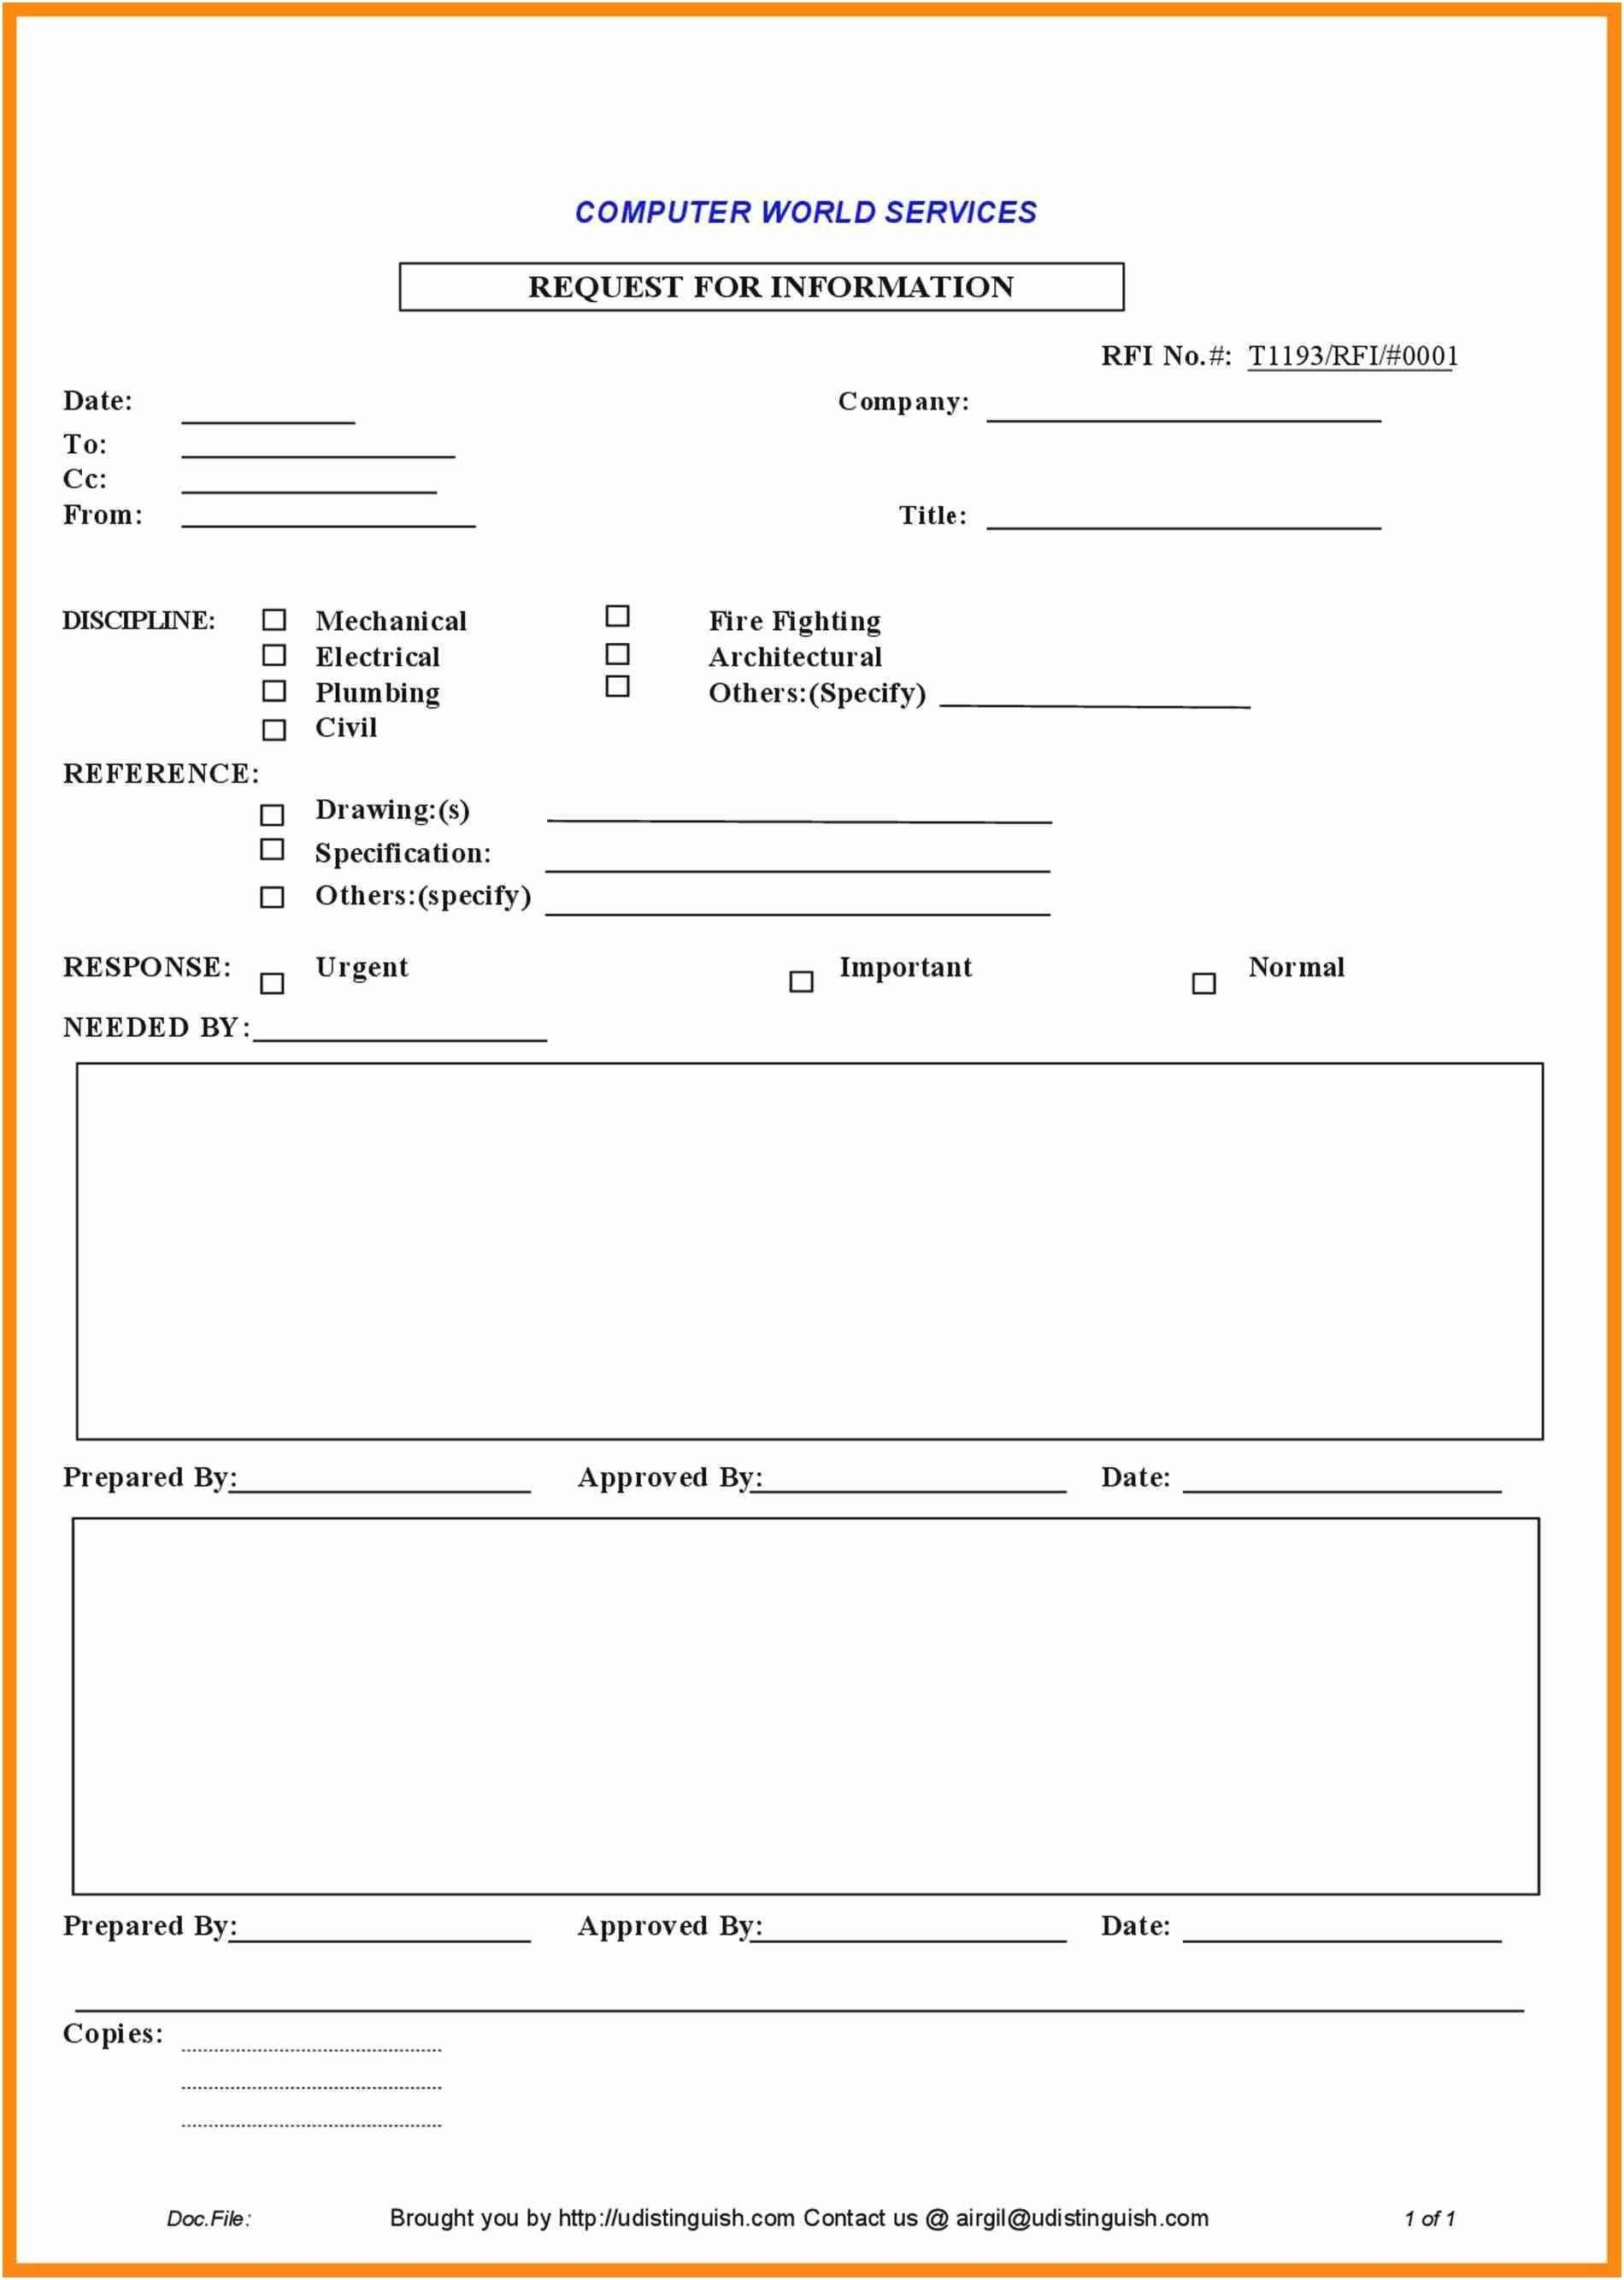 Nist Incident Response Plan Template Fresh Unique System Security Plan Template Nist